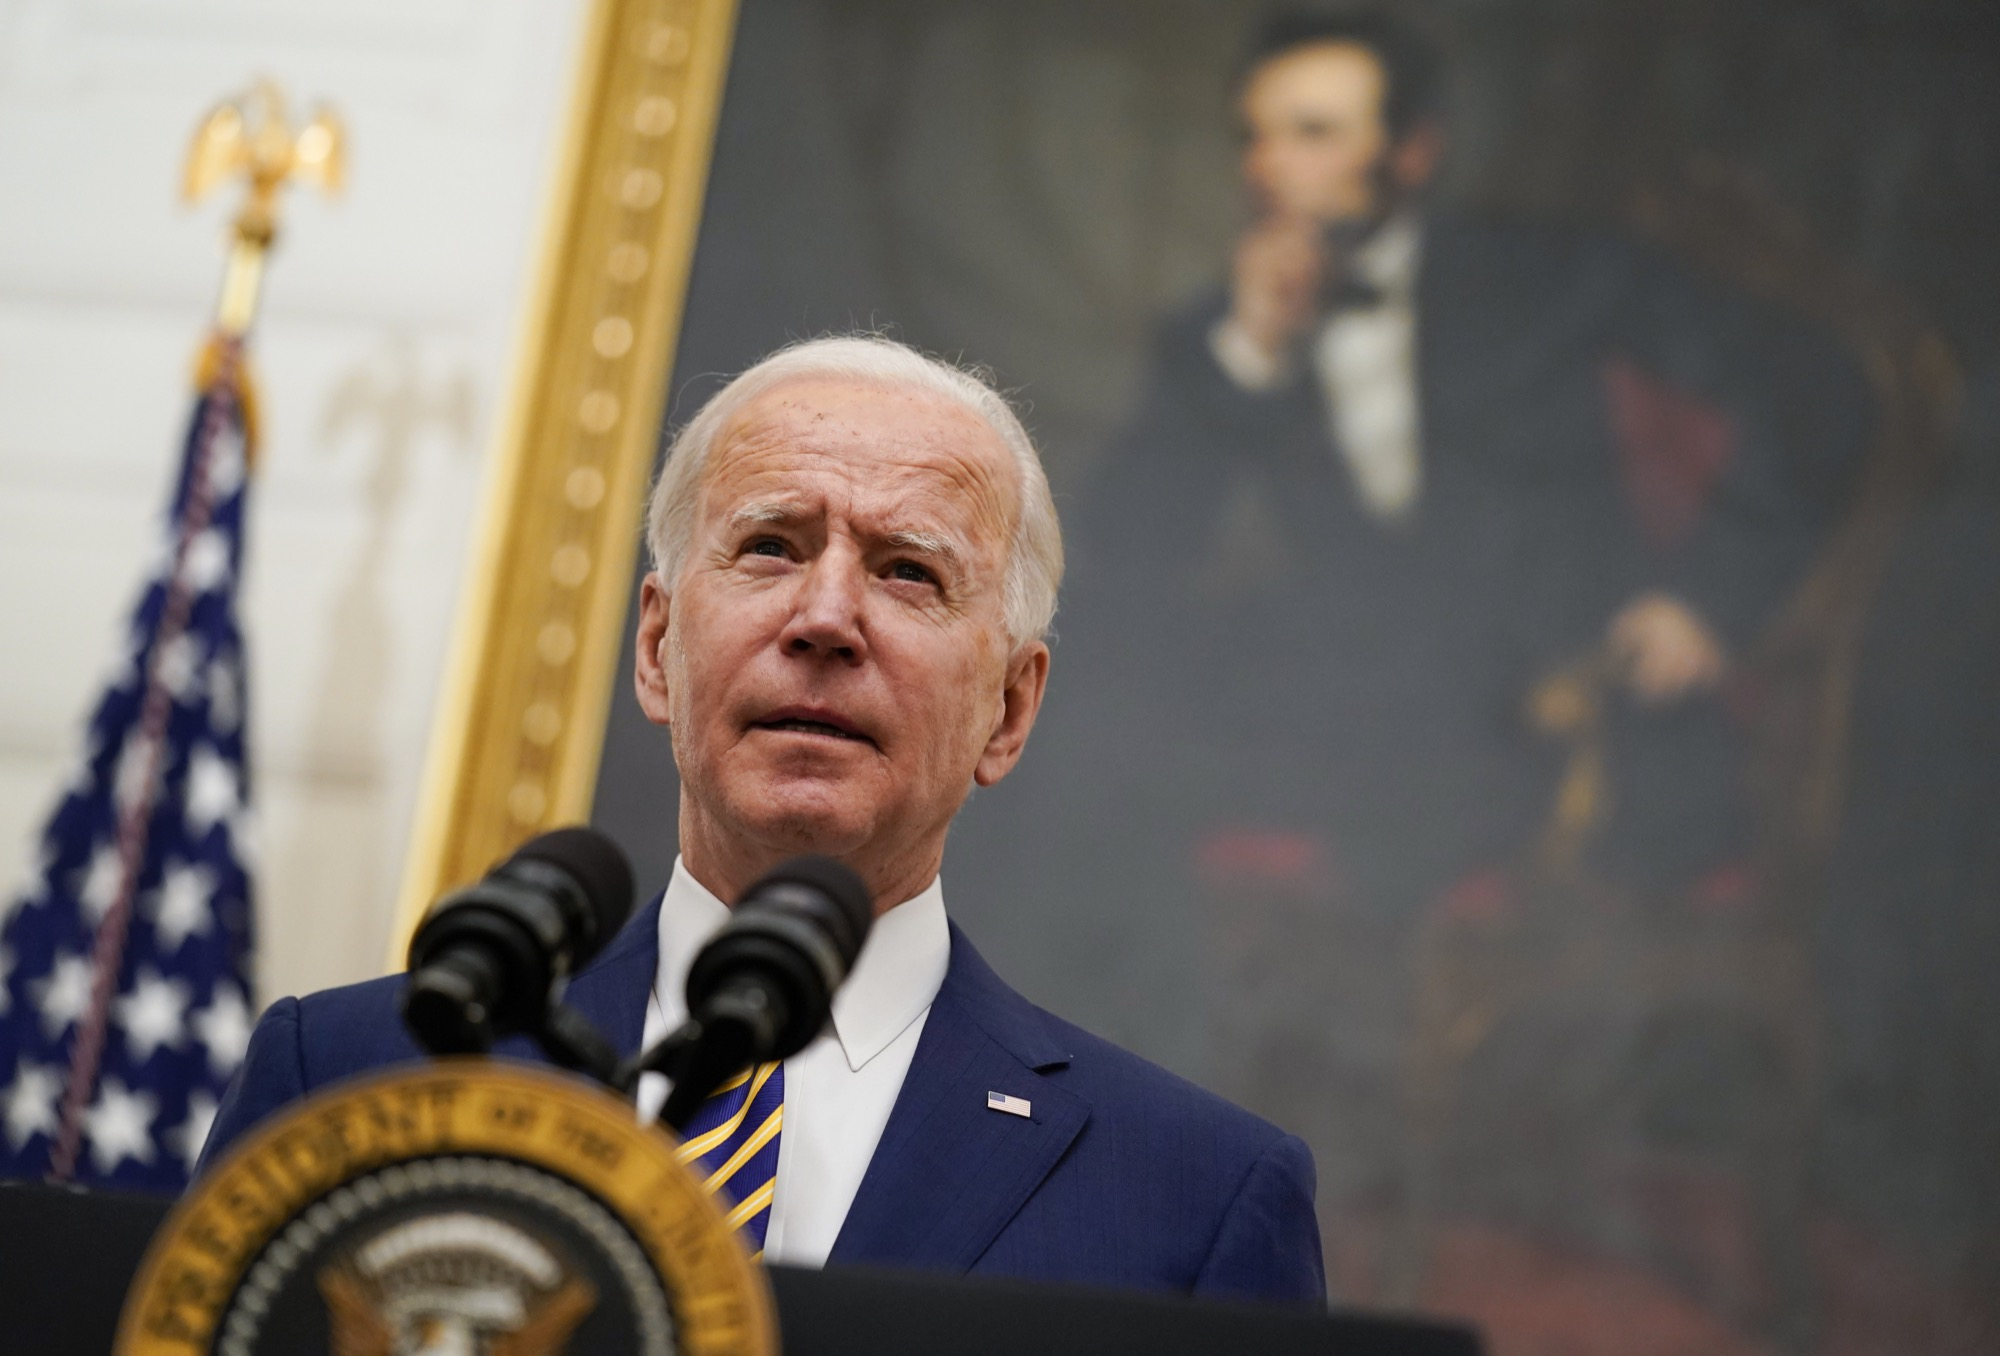 U.S. President Joe Biden speaks about the economy in the State Dining Room of the White House on Friday. (Associated Press)